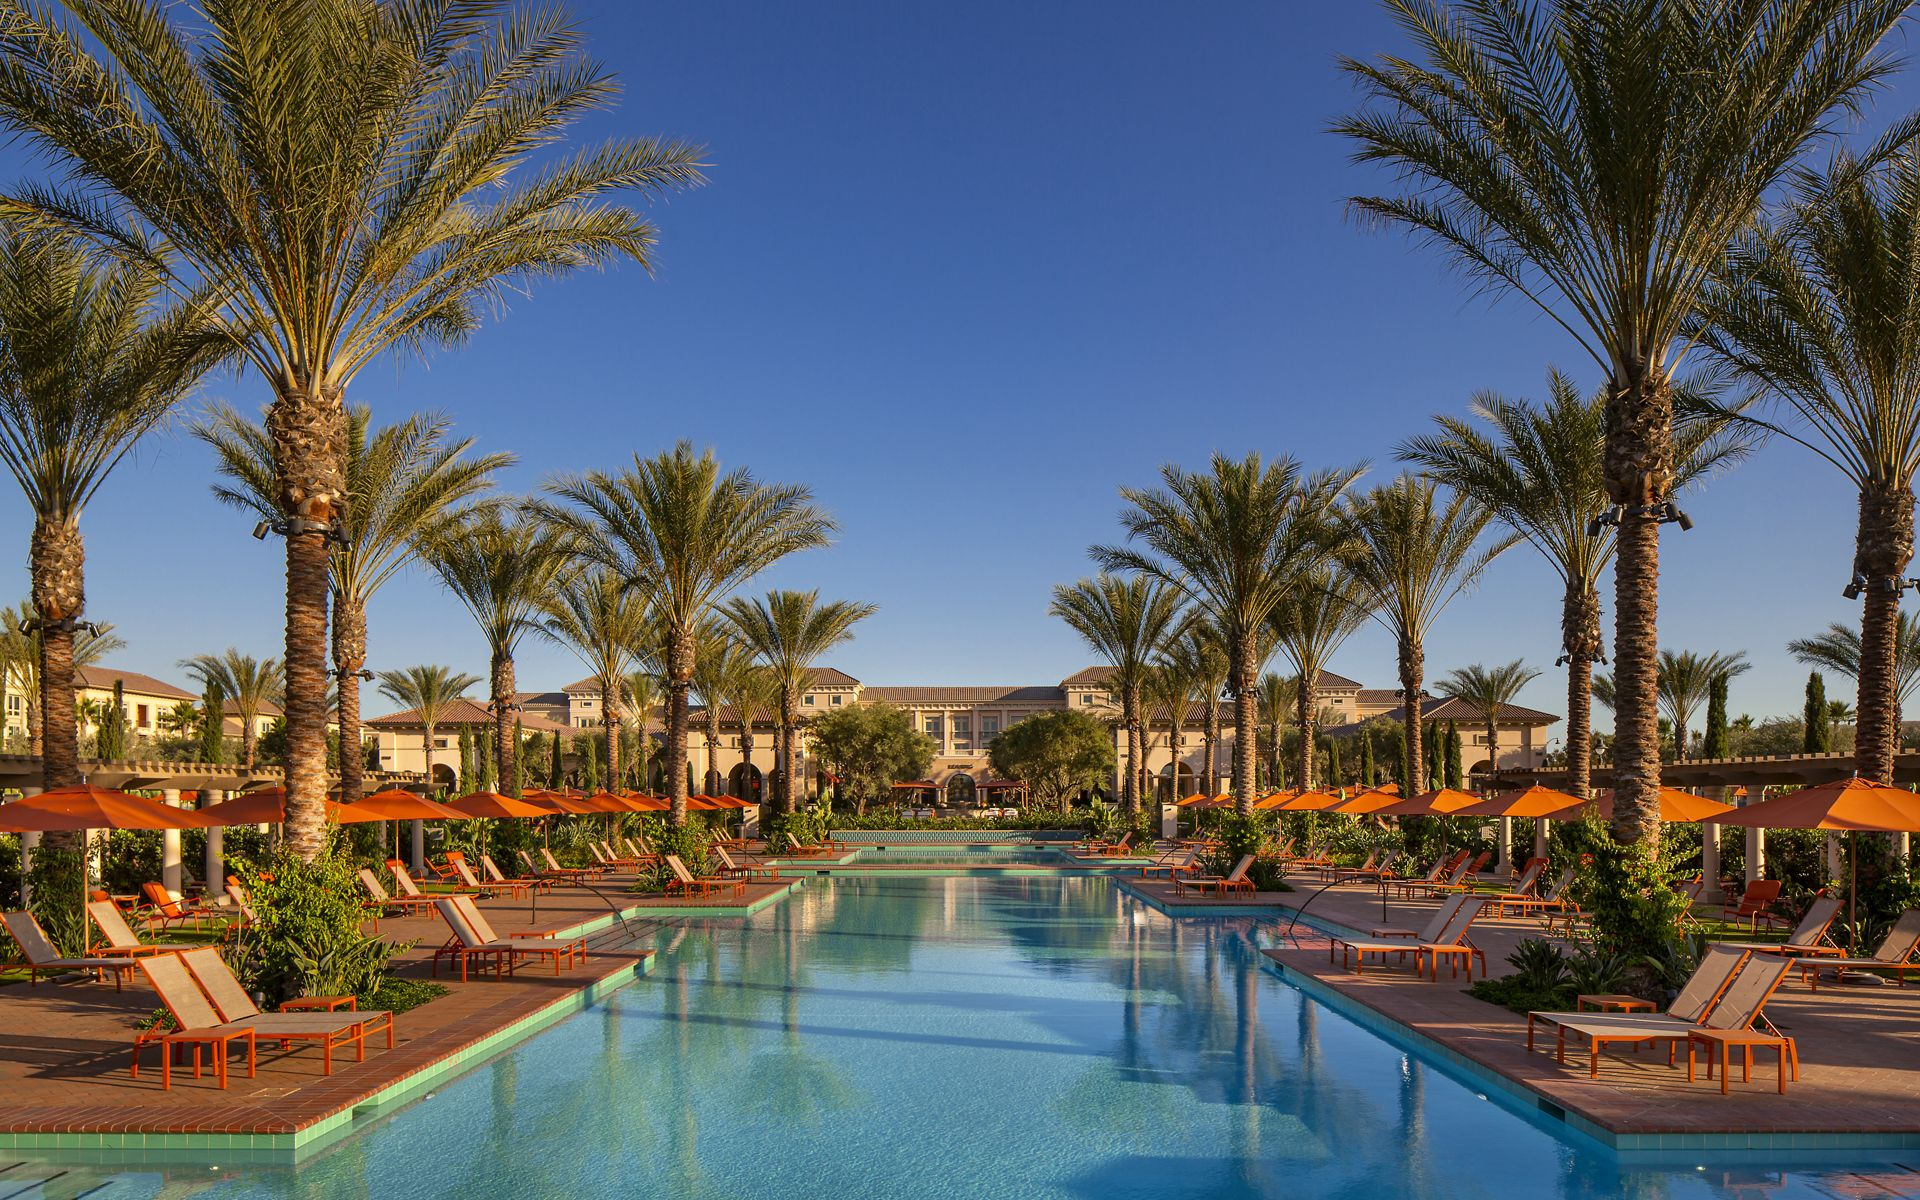 Pool view at Promenade Apartment Homes in Irvine, CA.